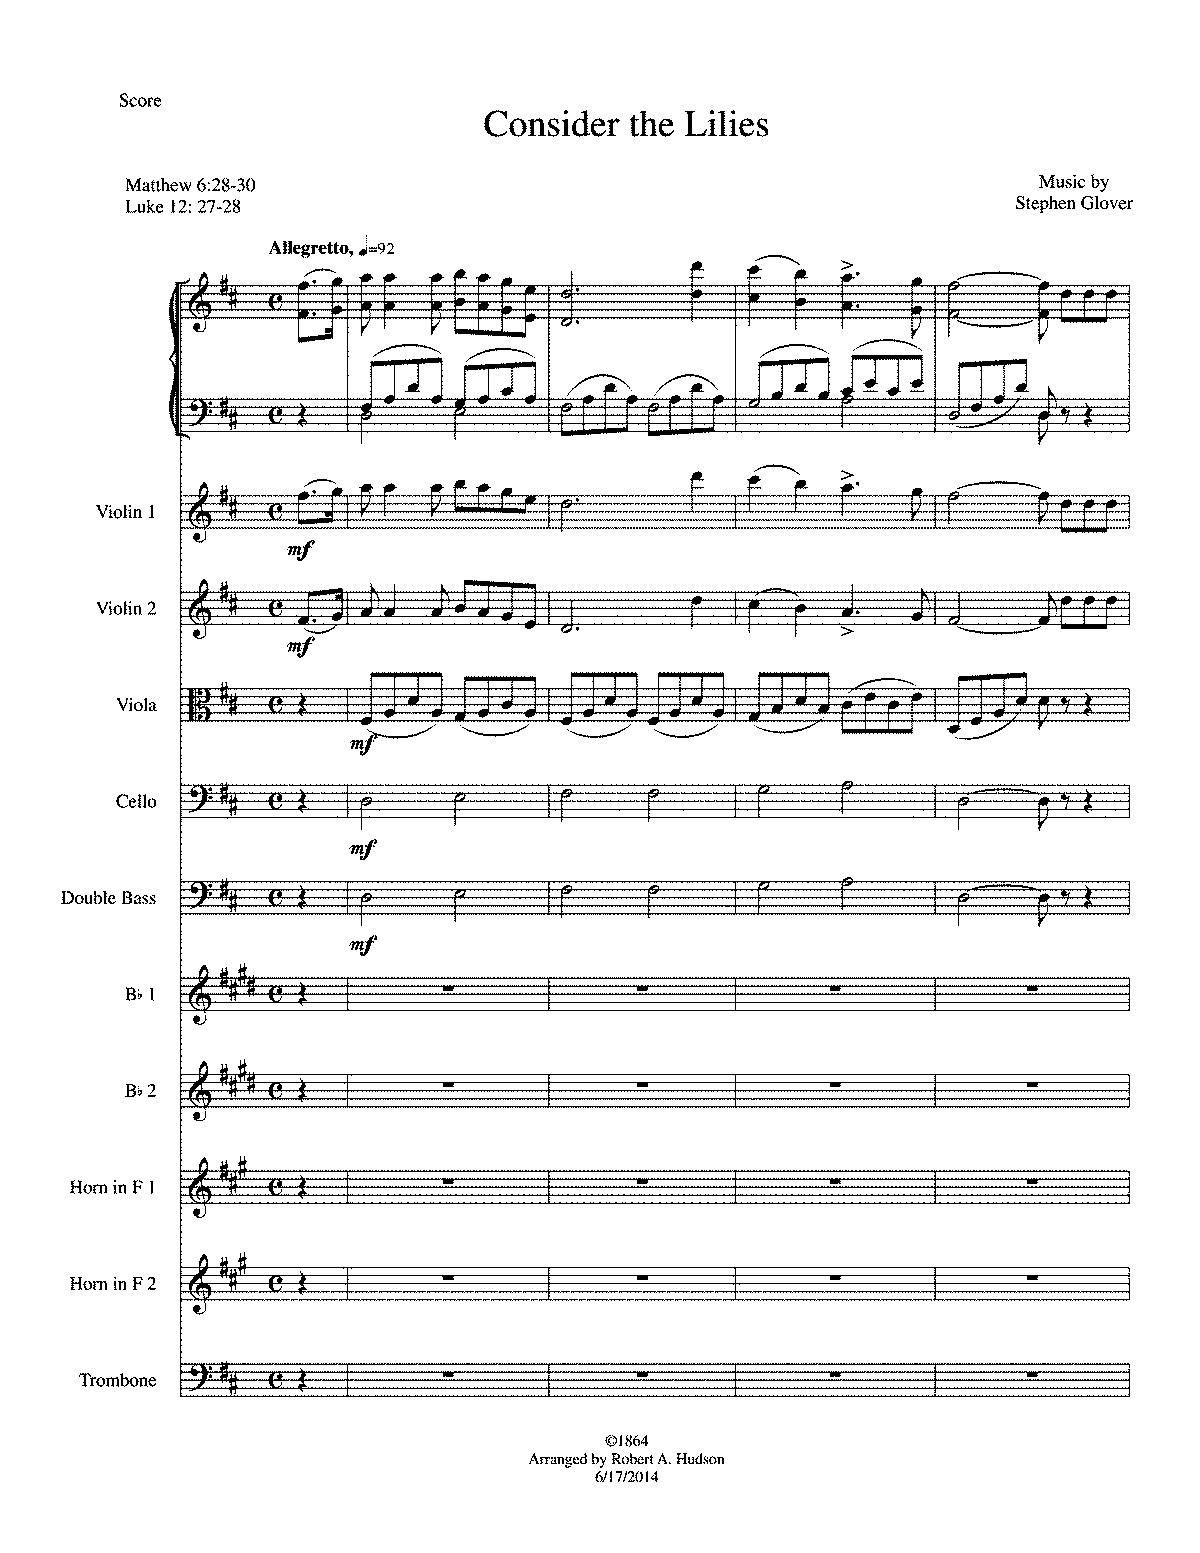 PMLP207321-Consider the Lilies with Strings - Complete Score.pdf